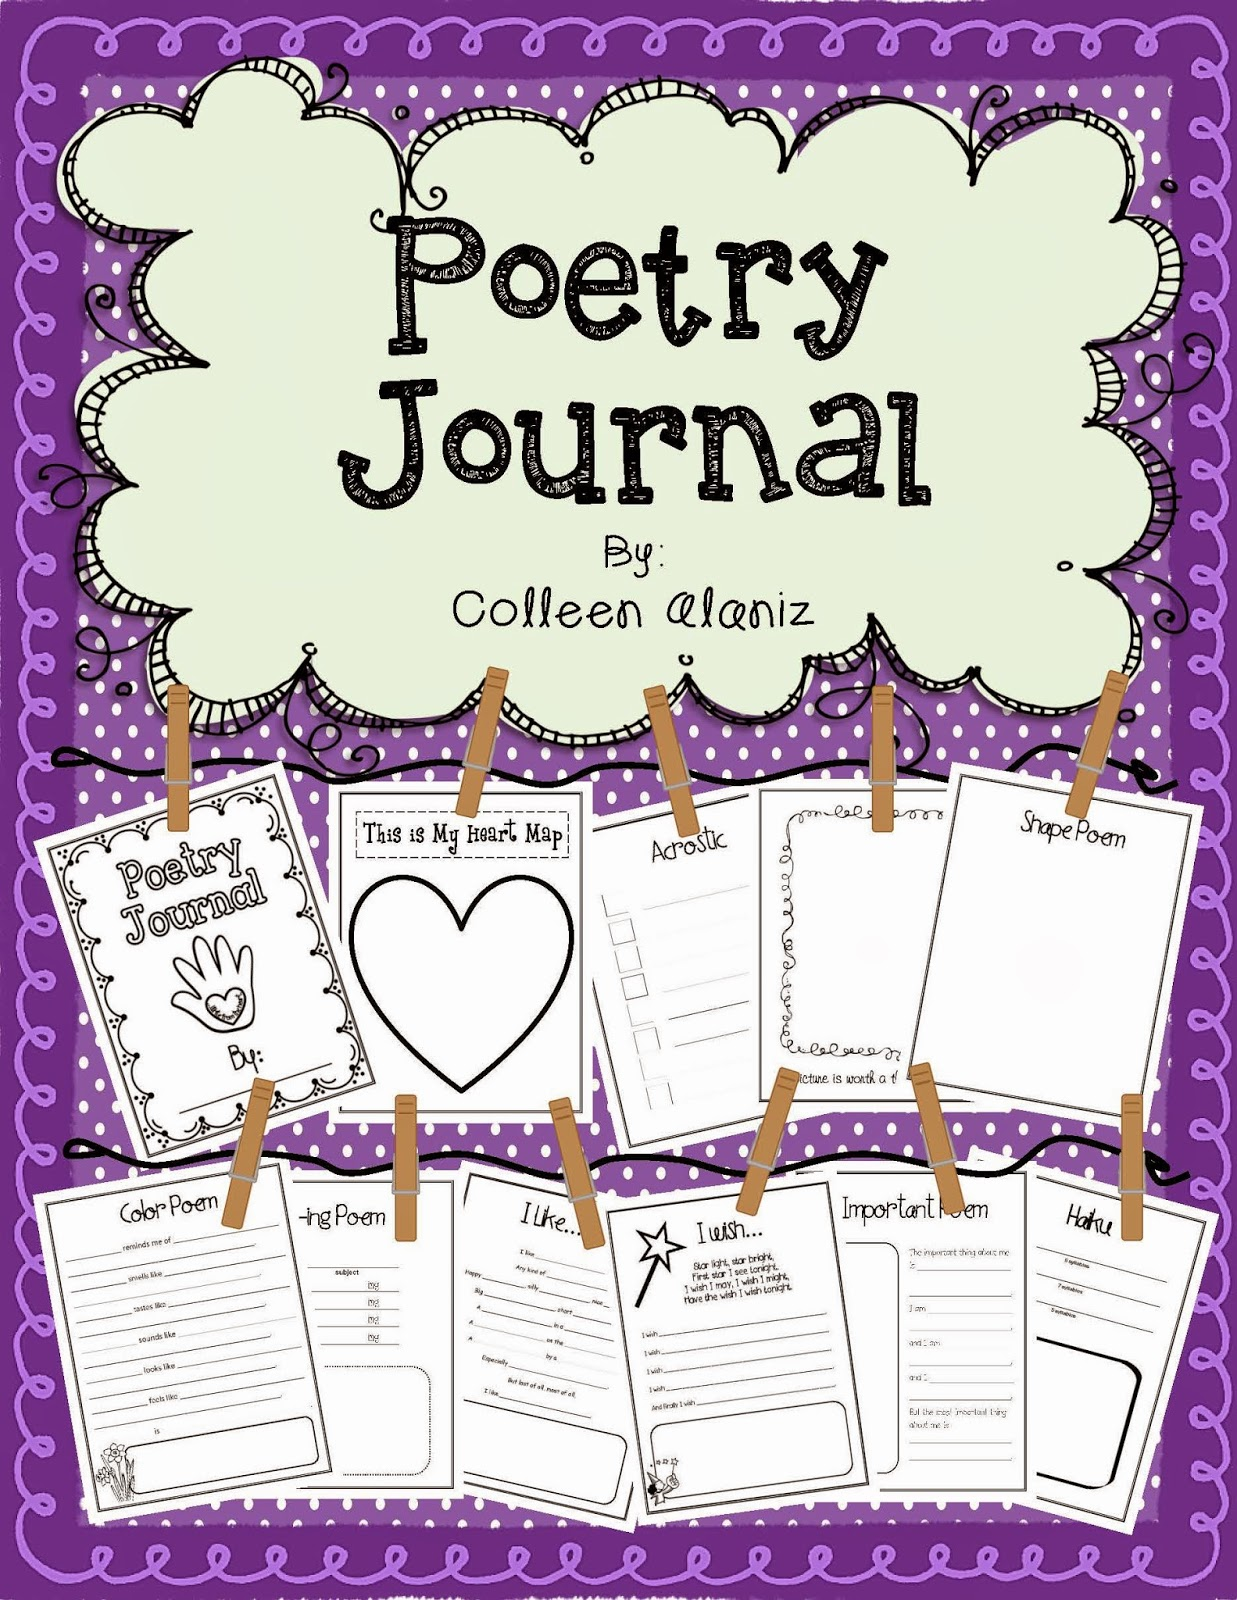 http://www.teacherspayteachers.com/Product/Poetry-Journal-Templates-to-Teach-Poetry-538886